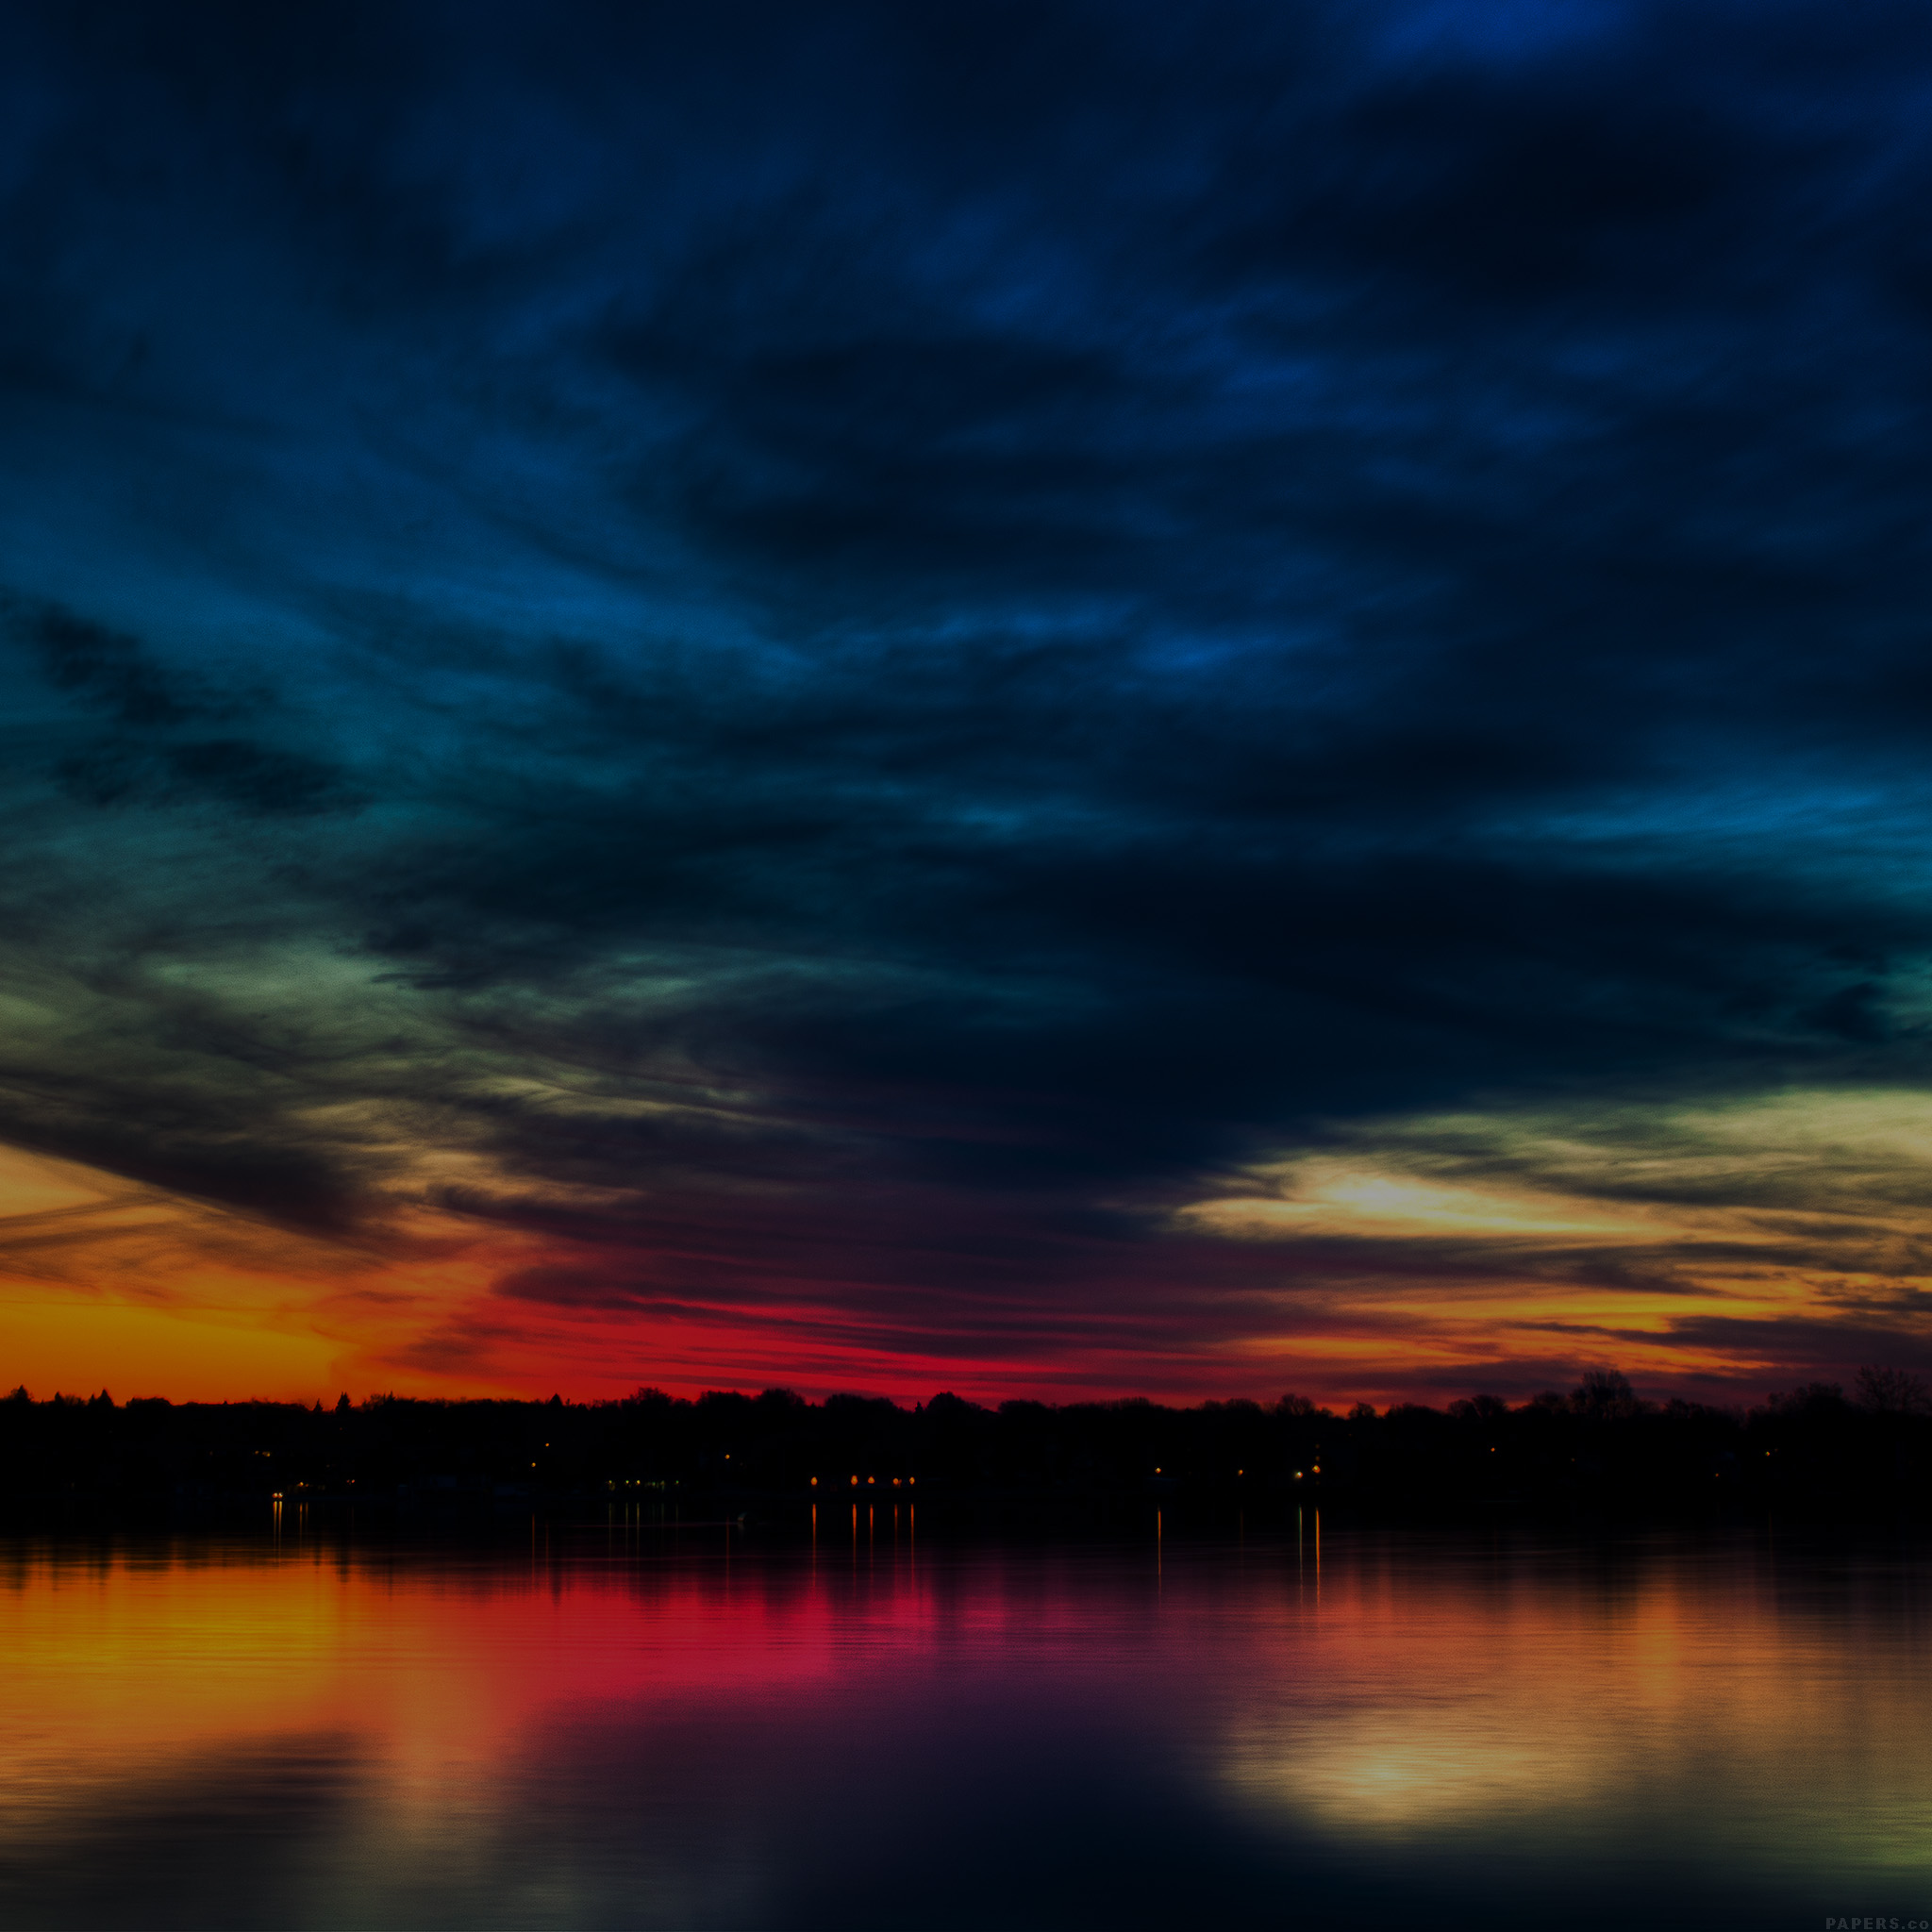 Lg Optimus Wallpaper Hd Mj80 Rainbow In The Sky Dark Lake Sea Nature Wallpaper